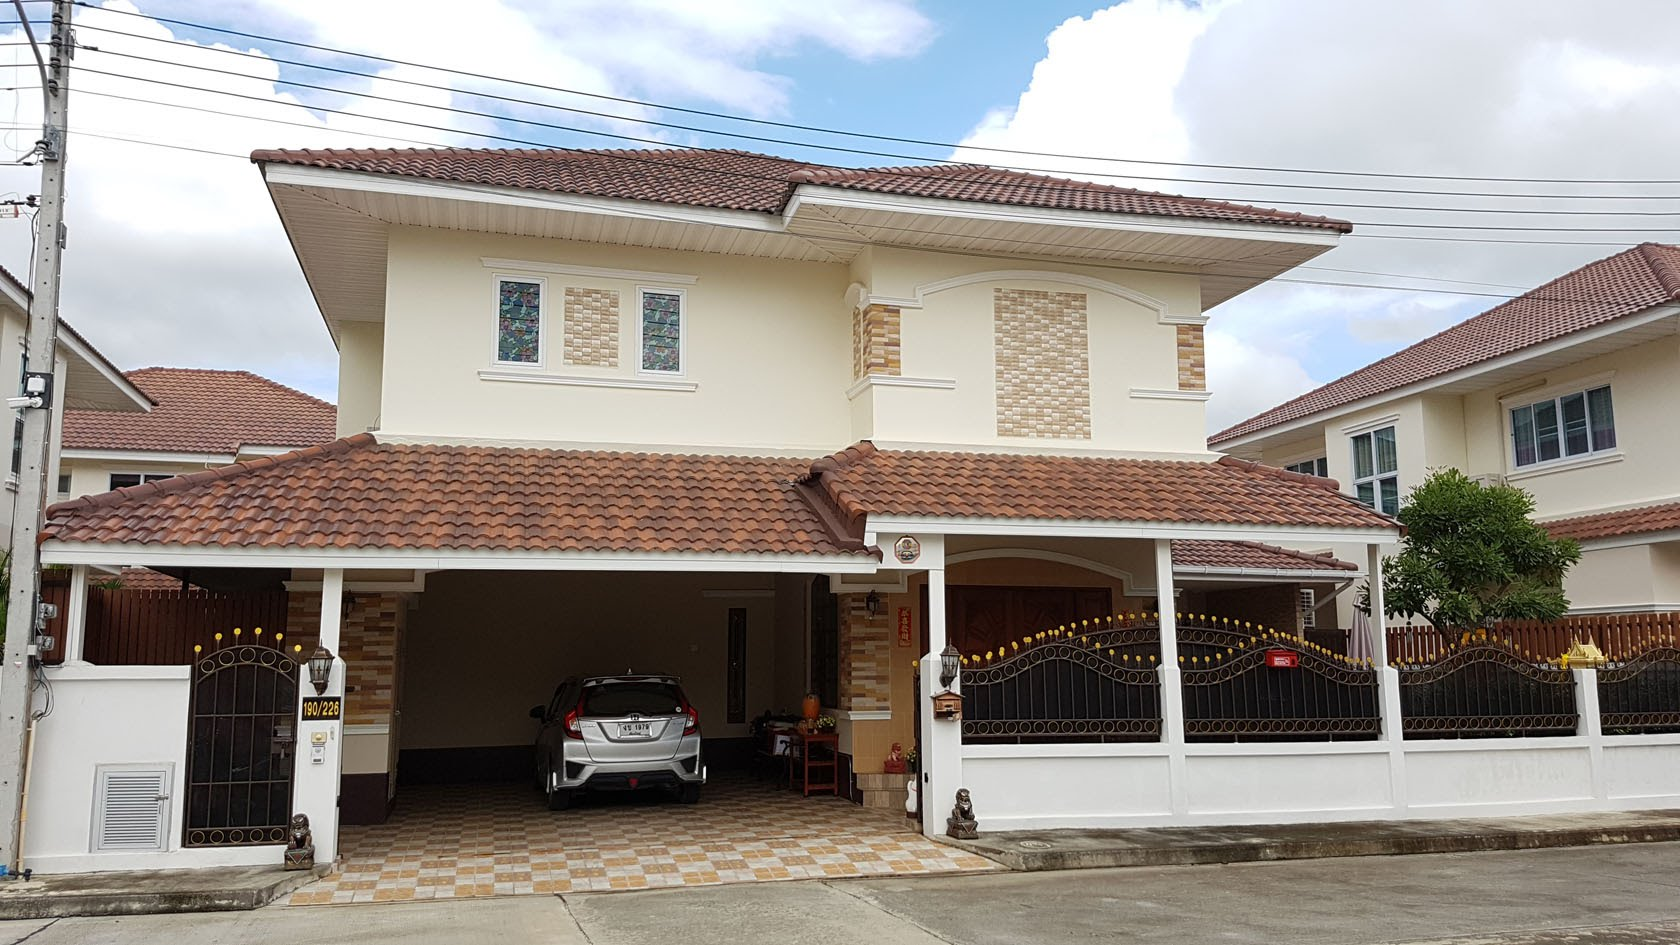 2 story 5 bedroom house in sivalai 4 nearby promenada for 2 story 5 bedroom house